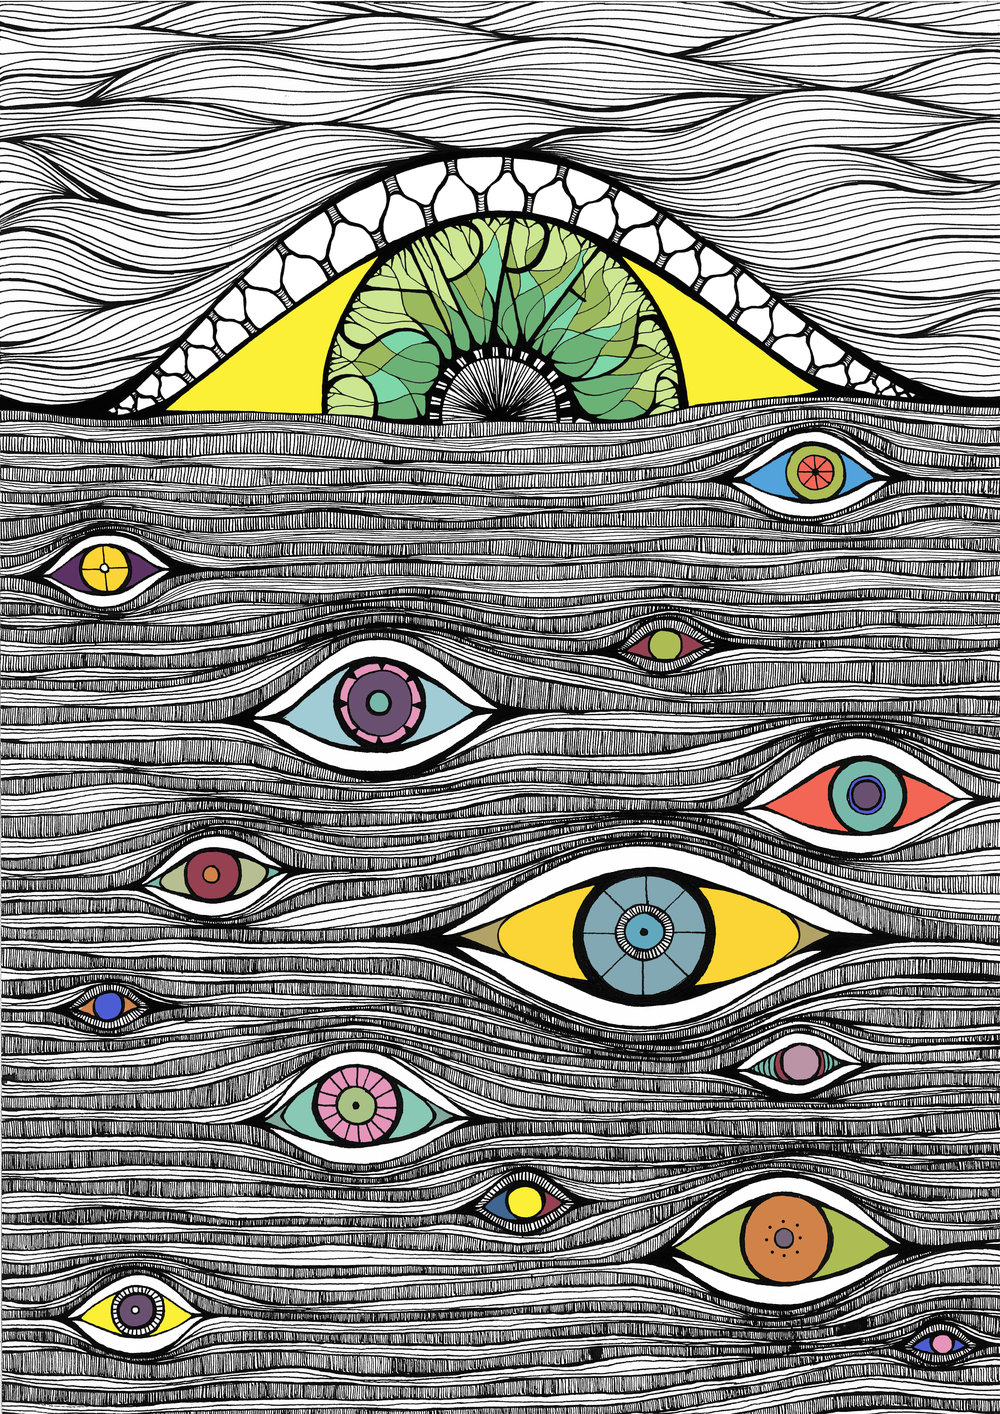 Psypress Uk - A cover for the 4th edition of Psychedelic Press UK that blends in the concepts of Altered States with a deep sea of wisdom which is all seeing and all knowing. The intricacy of the illustration reflects the meditative aspect of the literature and its topics, with each colourful eye becoming the openings through which